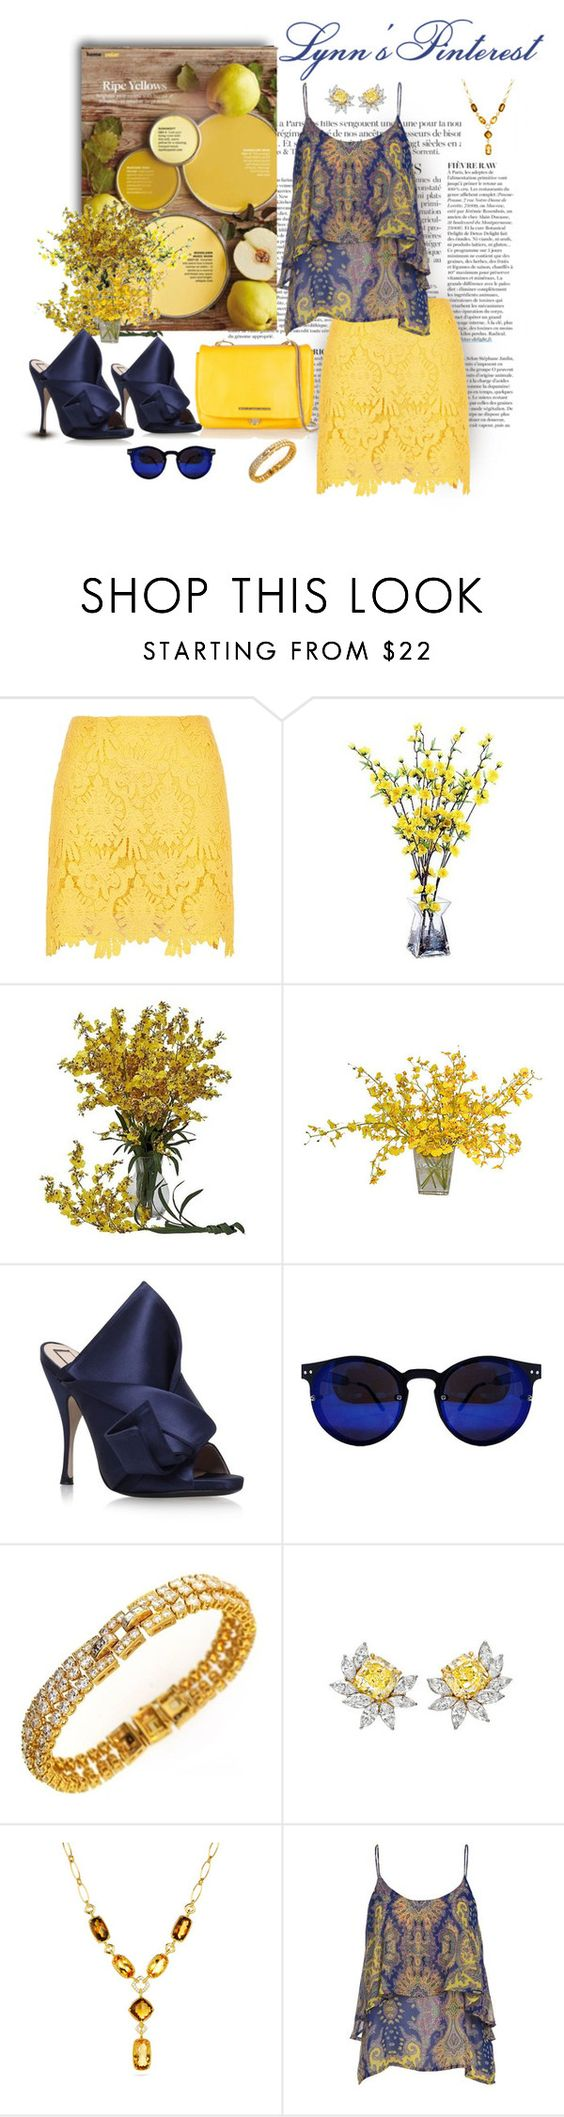 """""""Use One Of These 2 - #4125"""" by lynnspinterest ❤ liked on Polyvore featuring Anja, River Island, Nearly Natural, The French Bee, N°21, Cartier, Harry Winston, David Yurman and Marc by Marc Jacobs"""